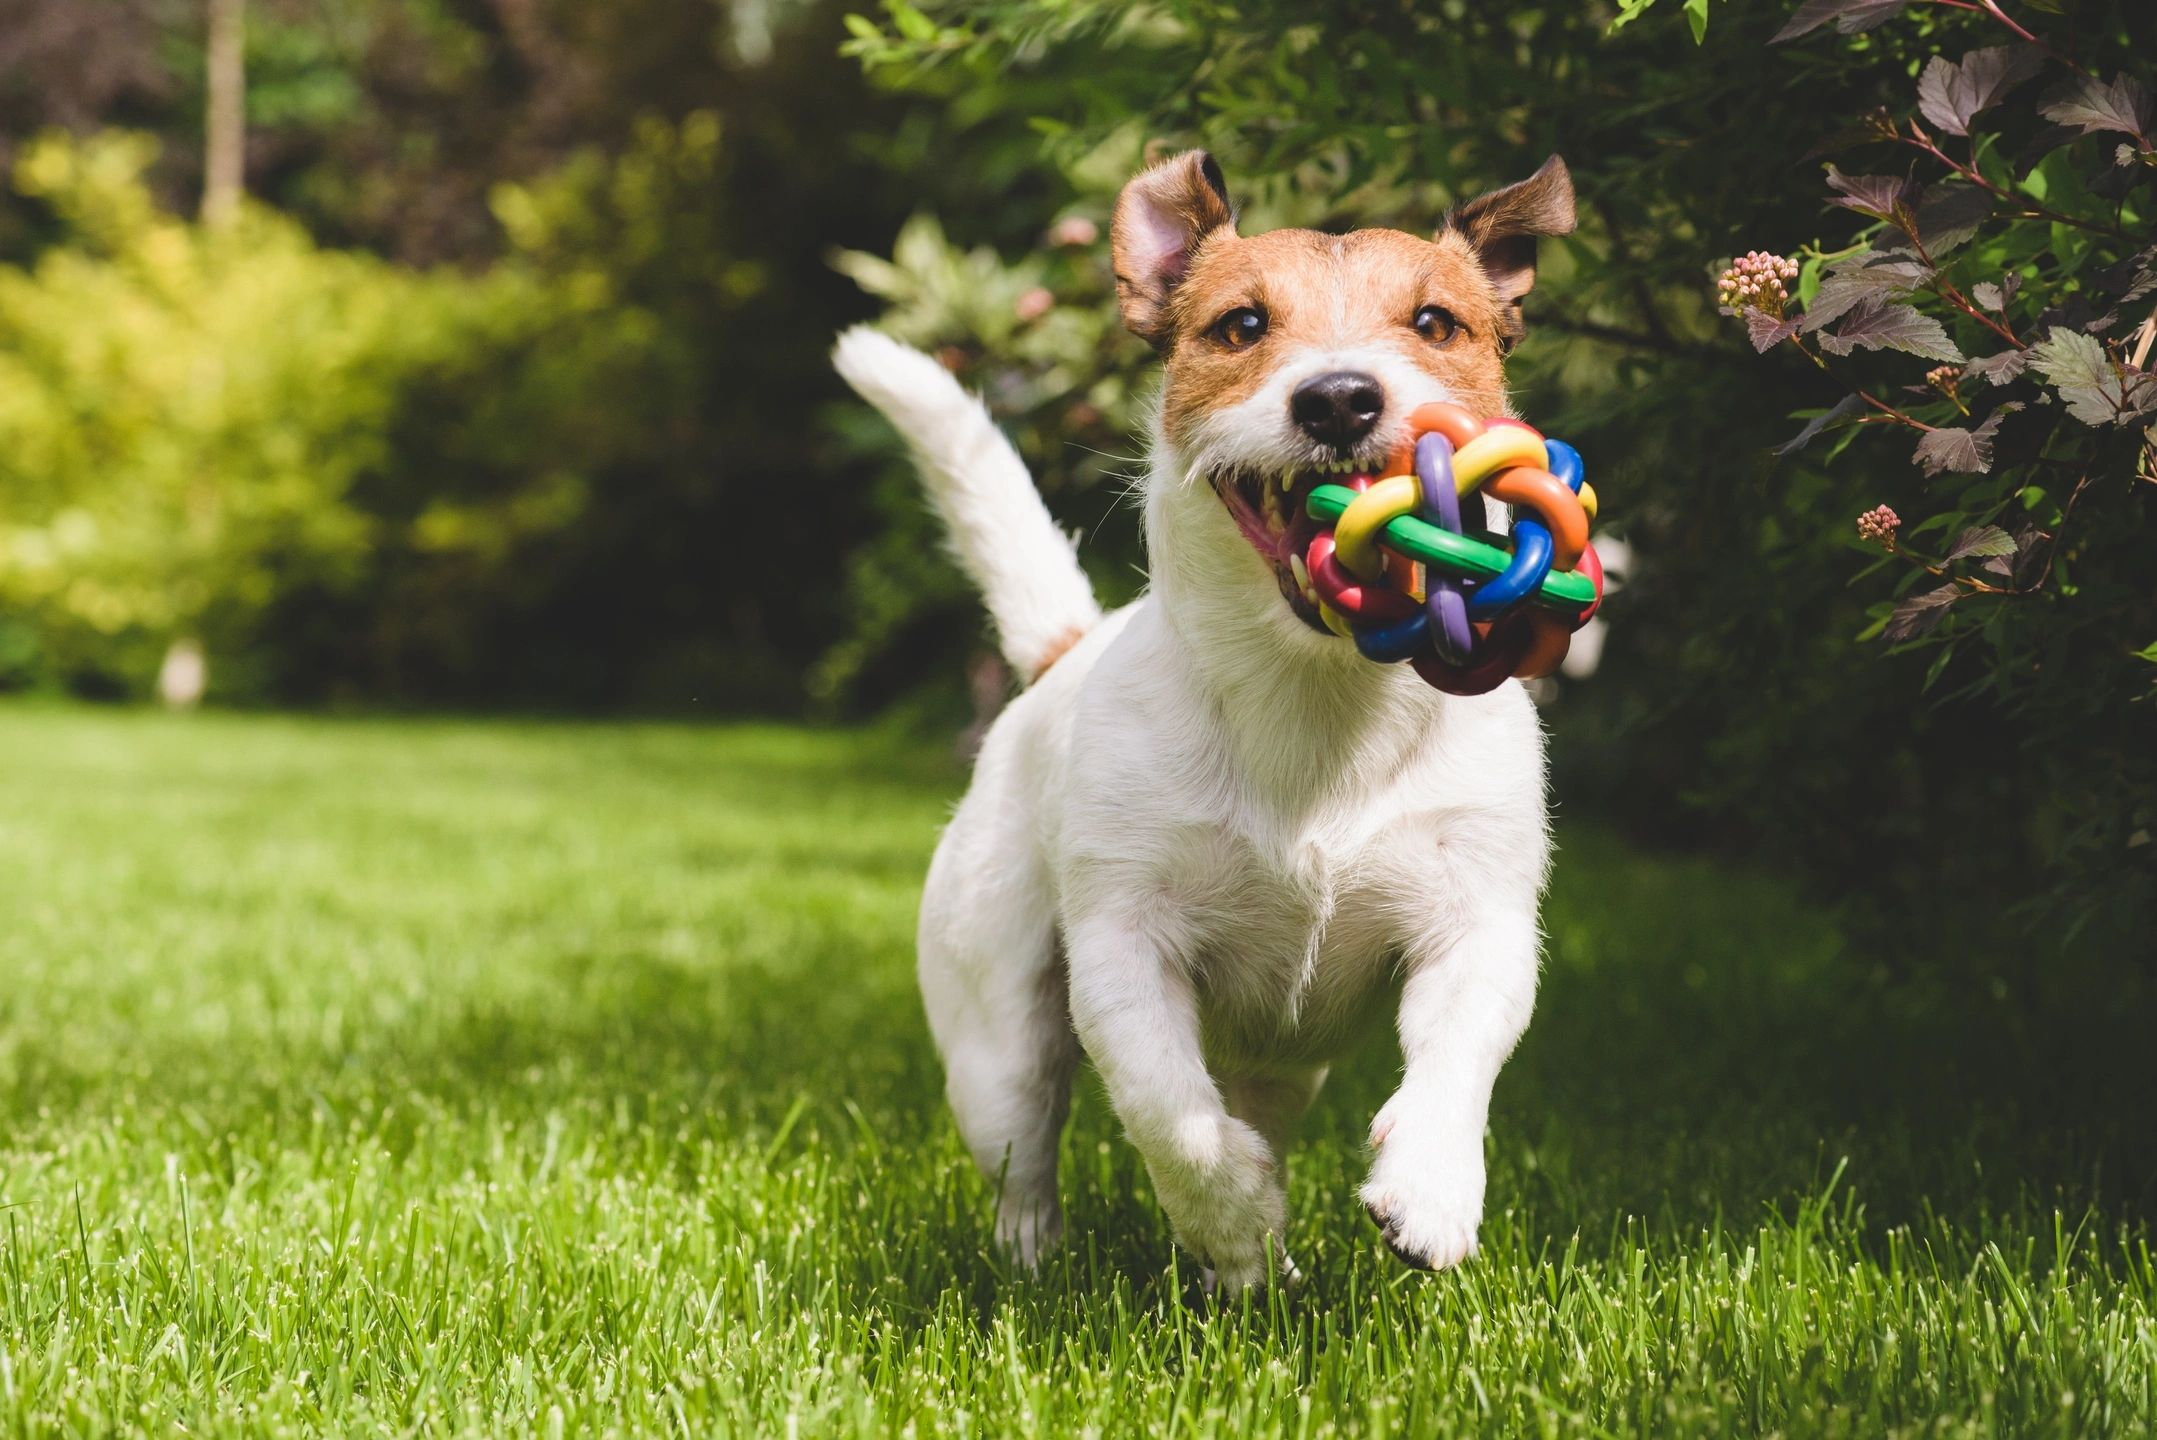 Jack russel dog running on grass with a colorful ball in their mouth.